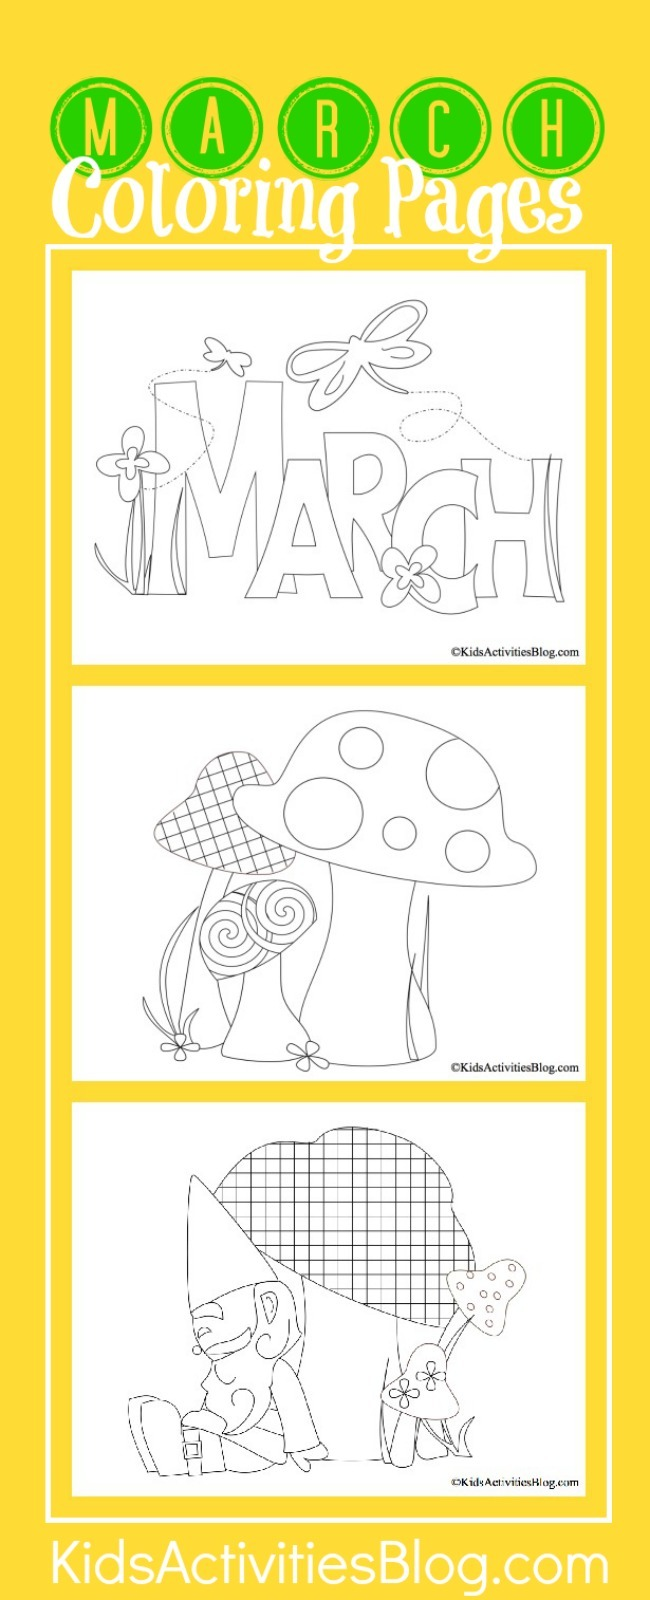 3 springy march coloring pages kids kids activities, i love mom coloring pages printable